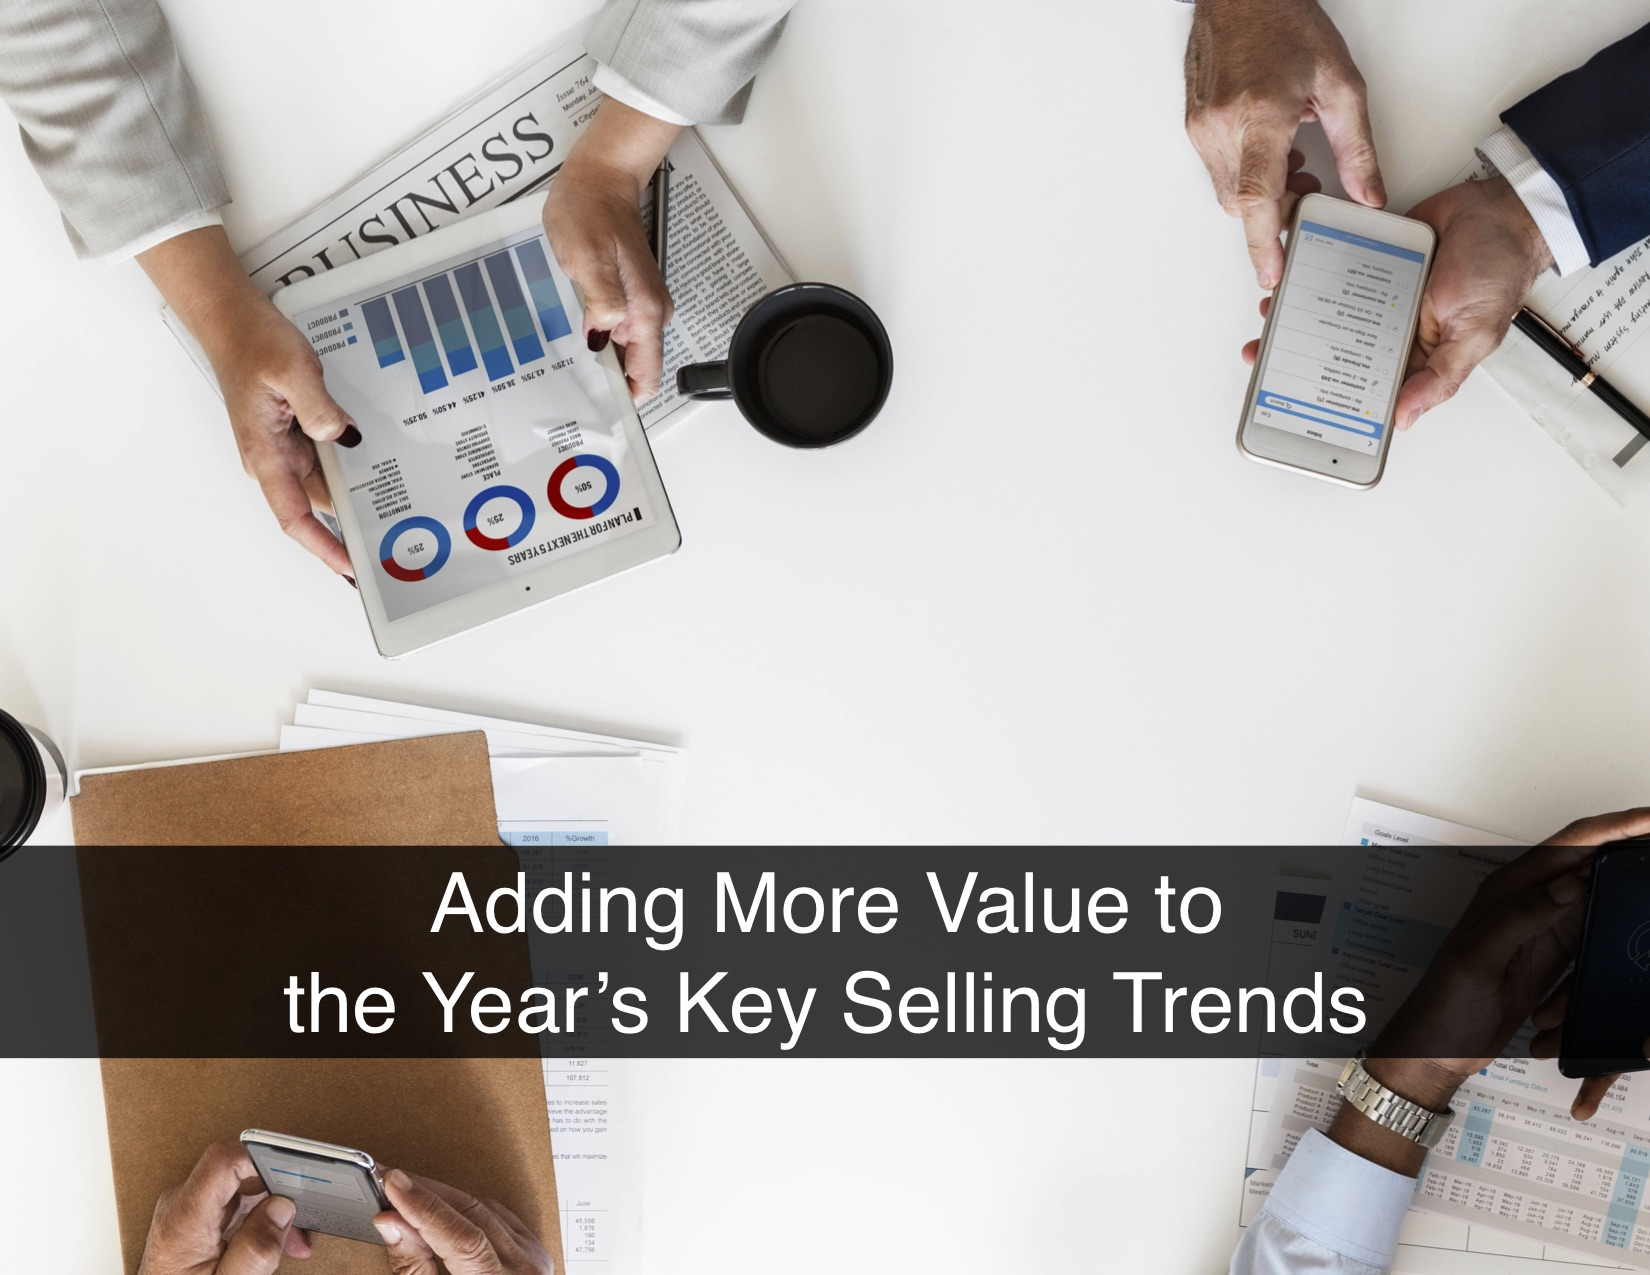 Key Selling Trends